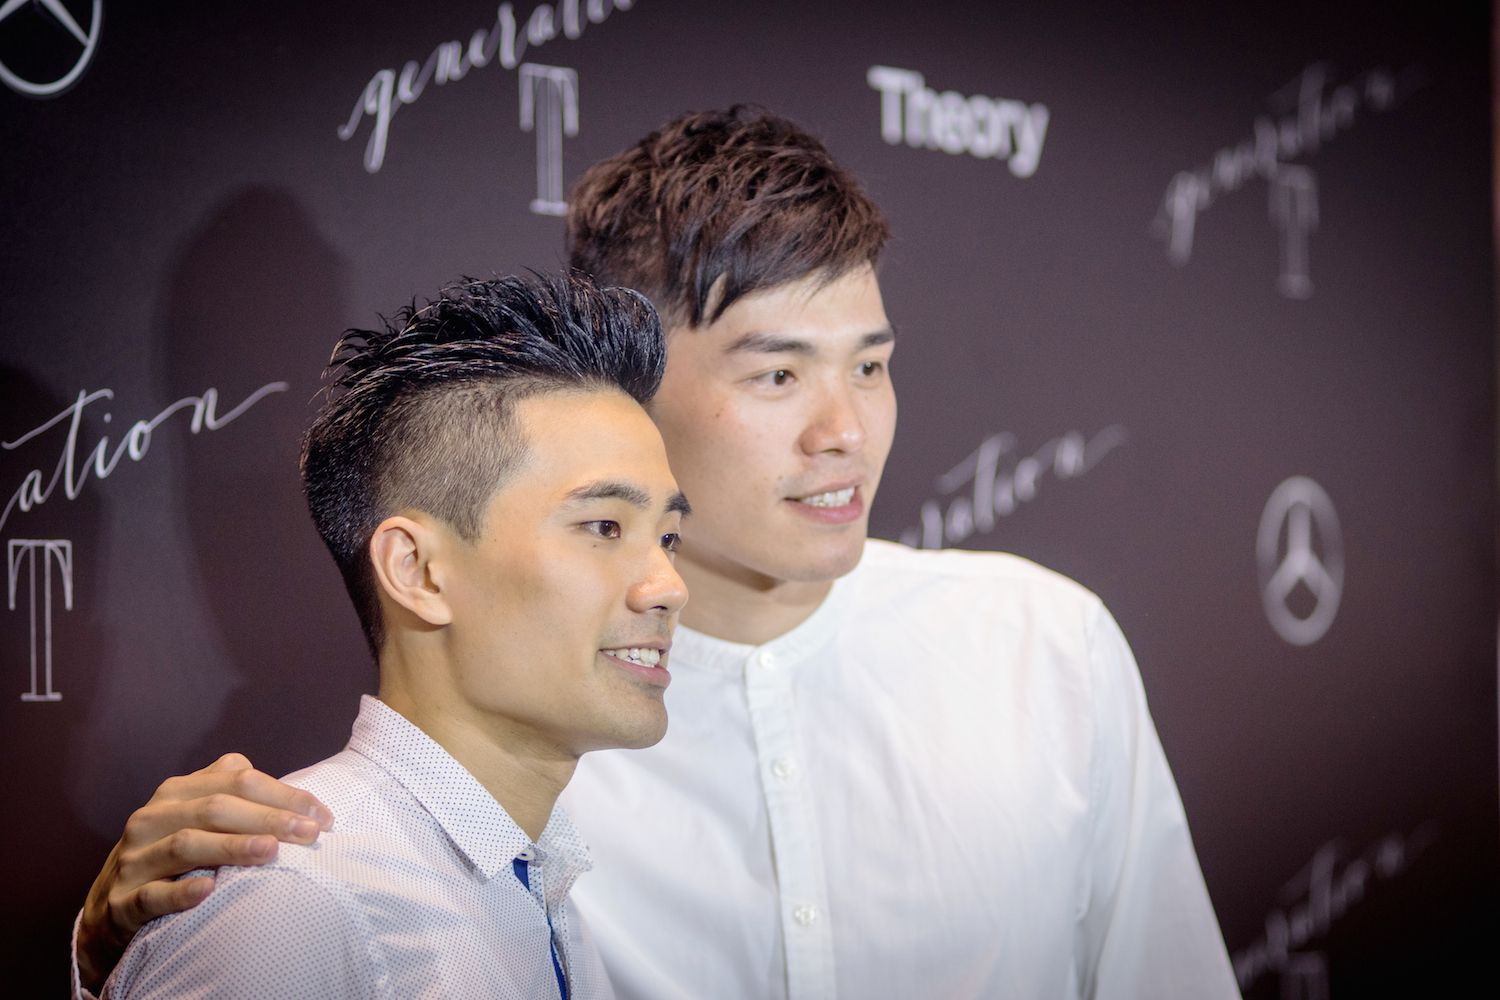 Emil Cheung and Shawn Cheung